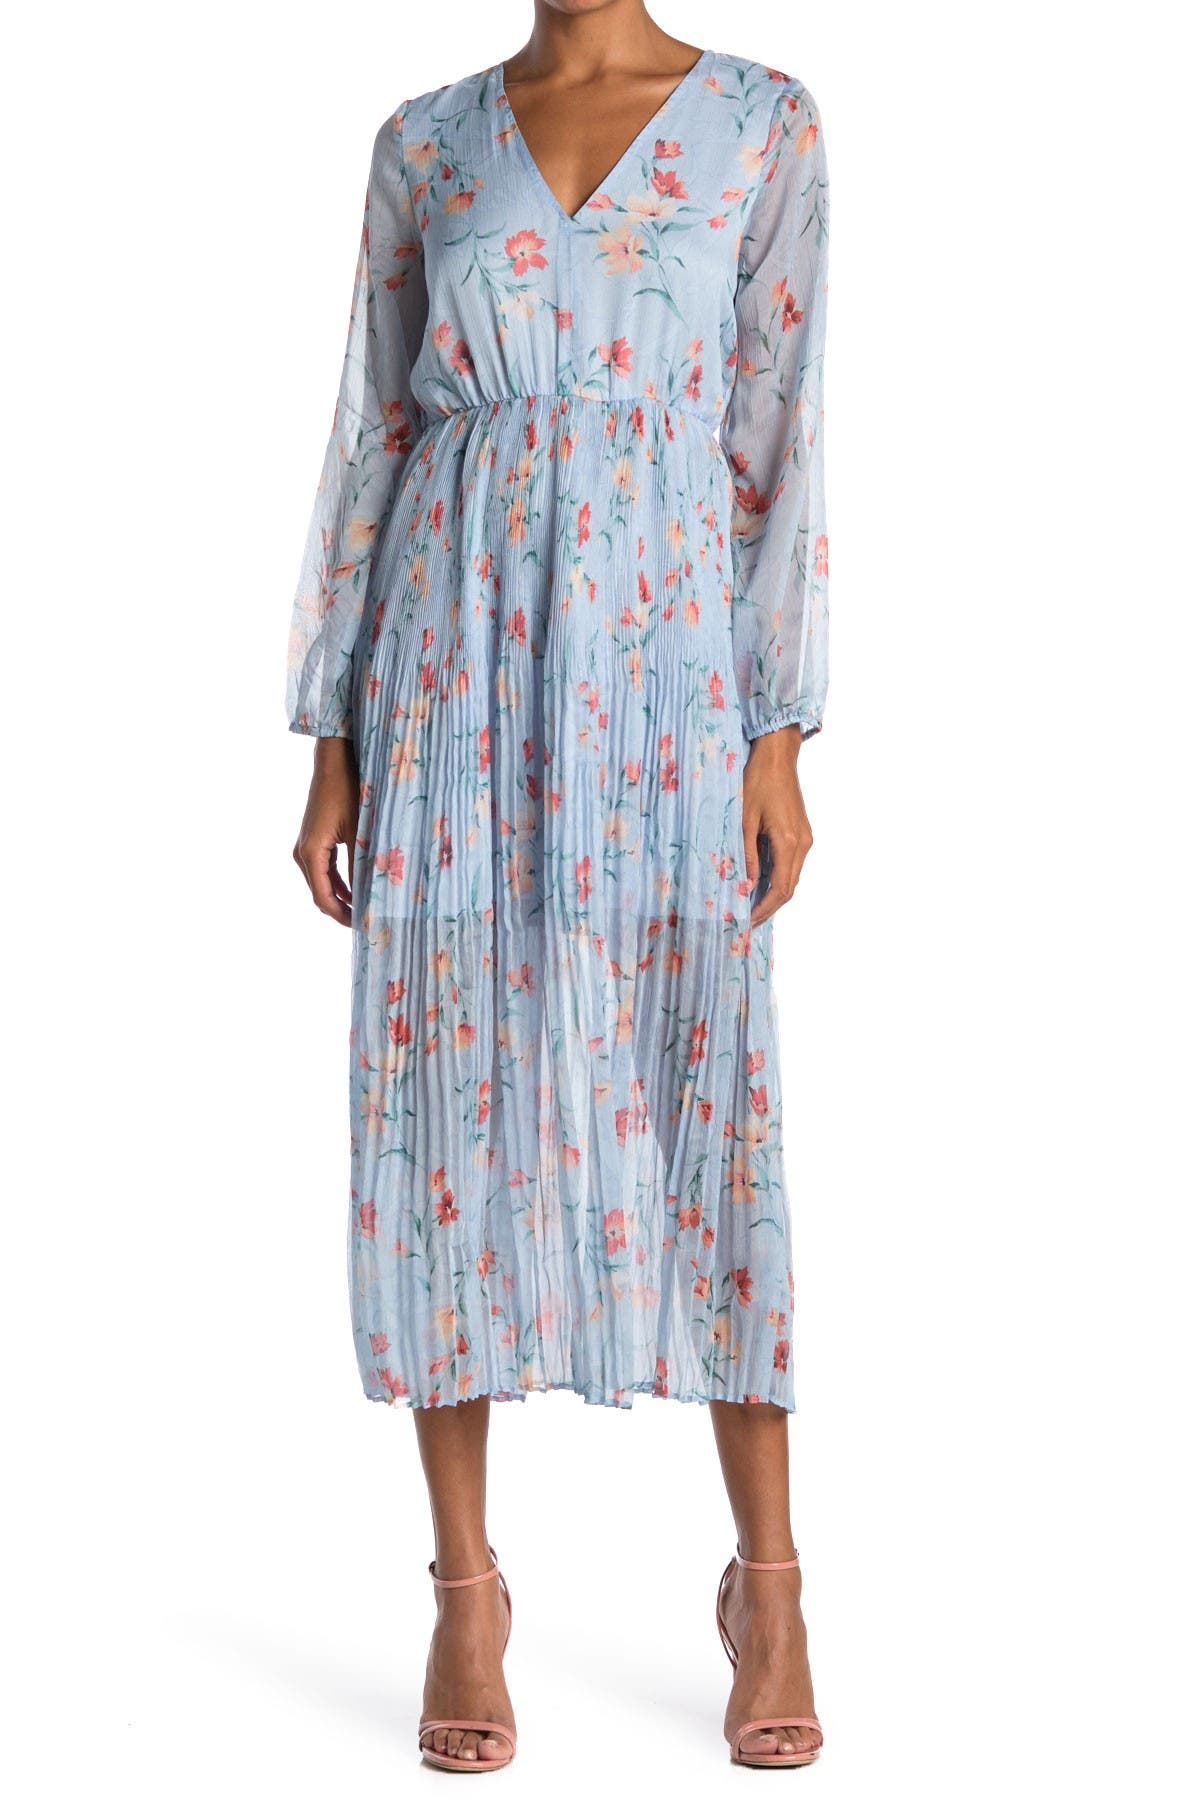 Image of MELLODAY Floral Pleated V-Neck Midi Dress